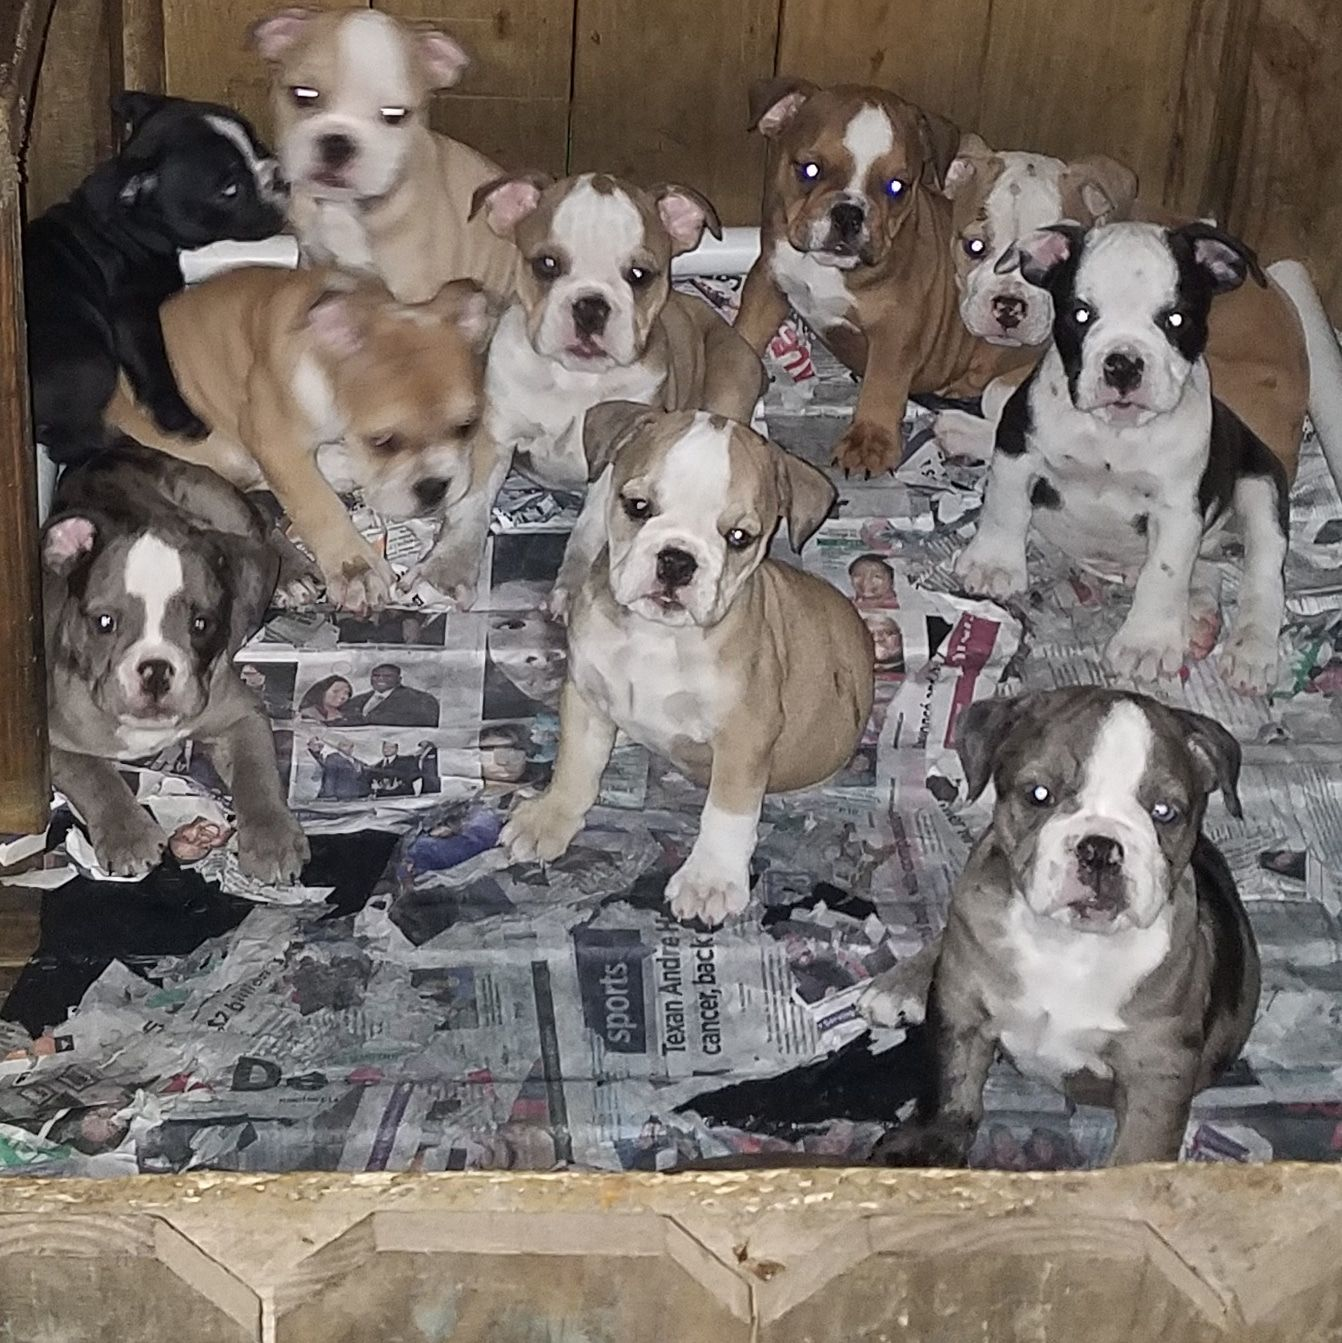 Olde english bulldogge puppies ready for their furever